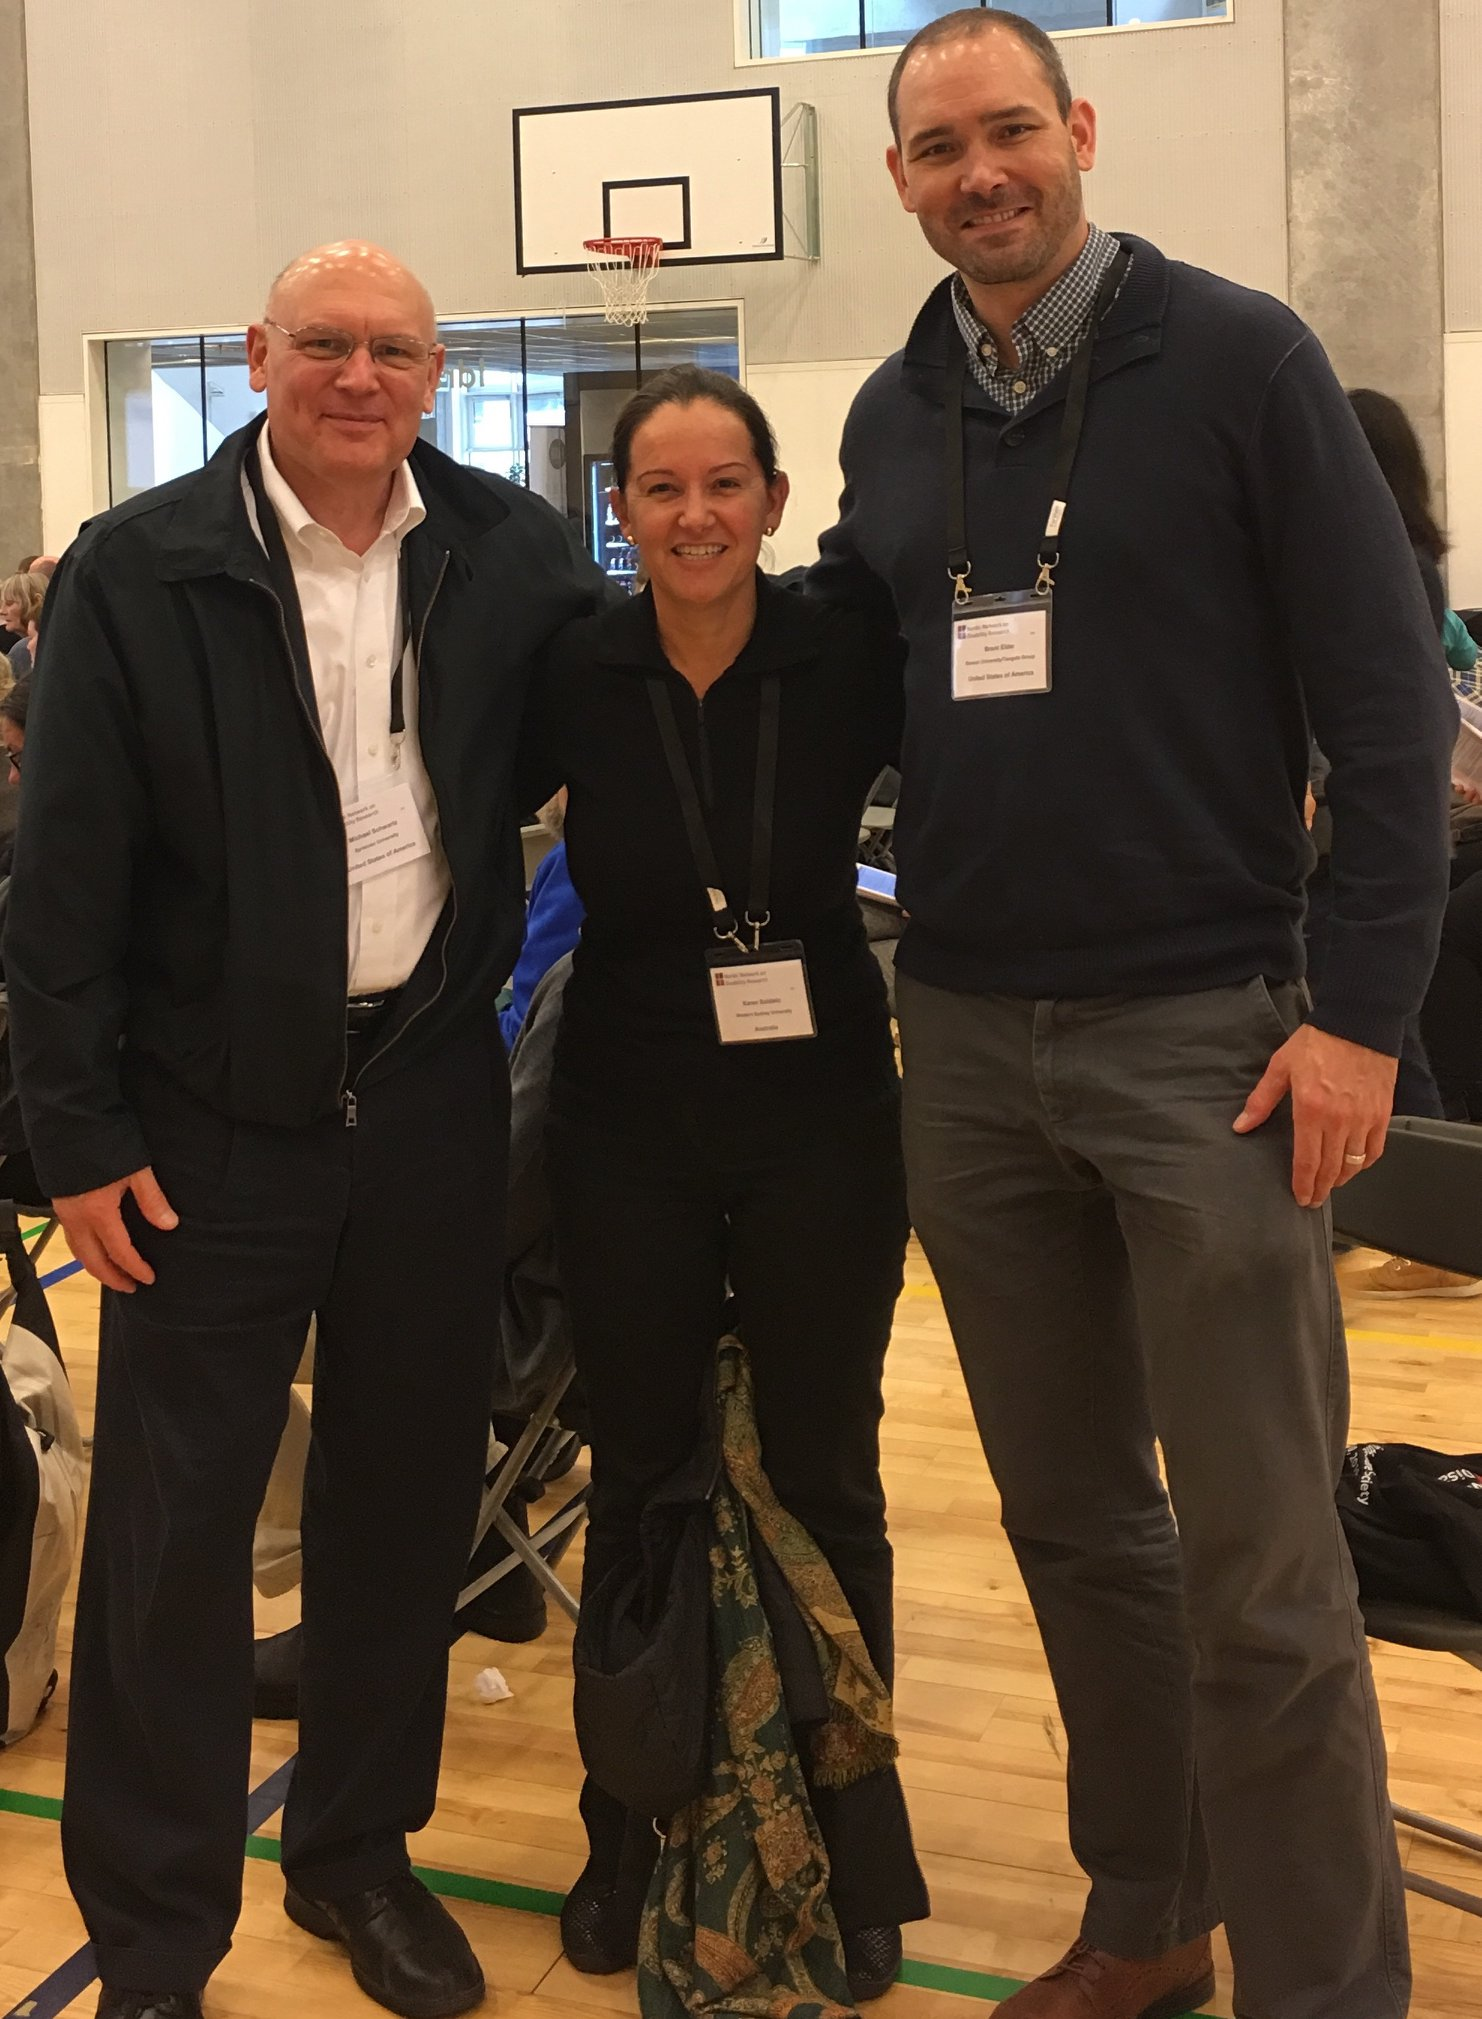 Michael Schwartz (left, black jacket and white shirt) stands with critical disability studies scholar Karen Soldatic of Western Sydney University (middle, black shirt), and Brent Elder (right, blue sweater).